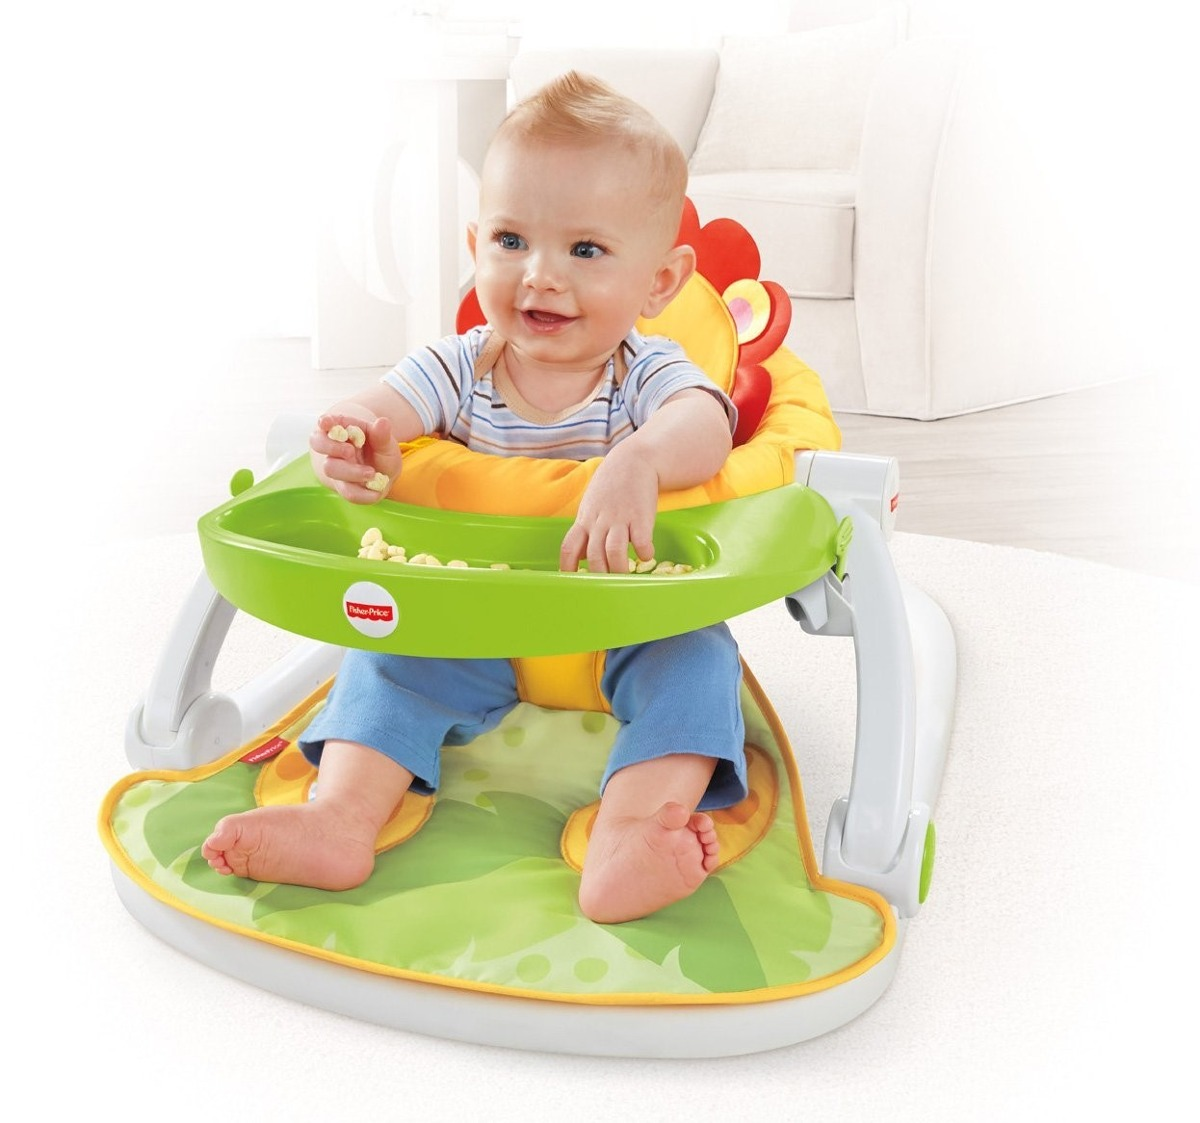 Silla para bebe fisher price plegable con bandeja o mesita for Silla fisher price